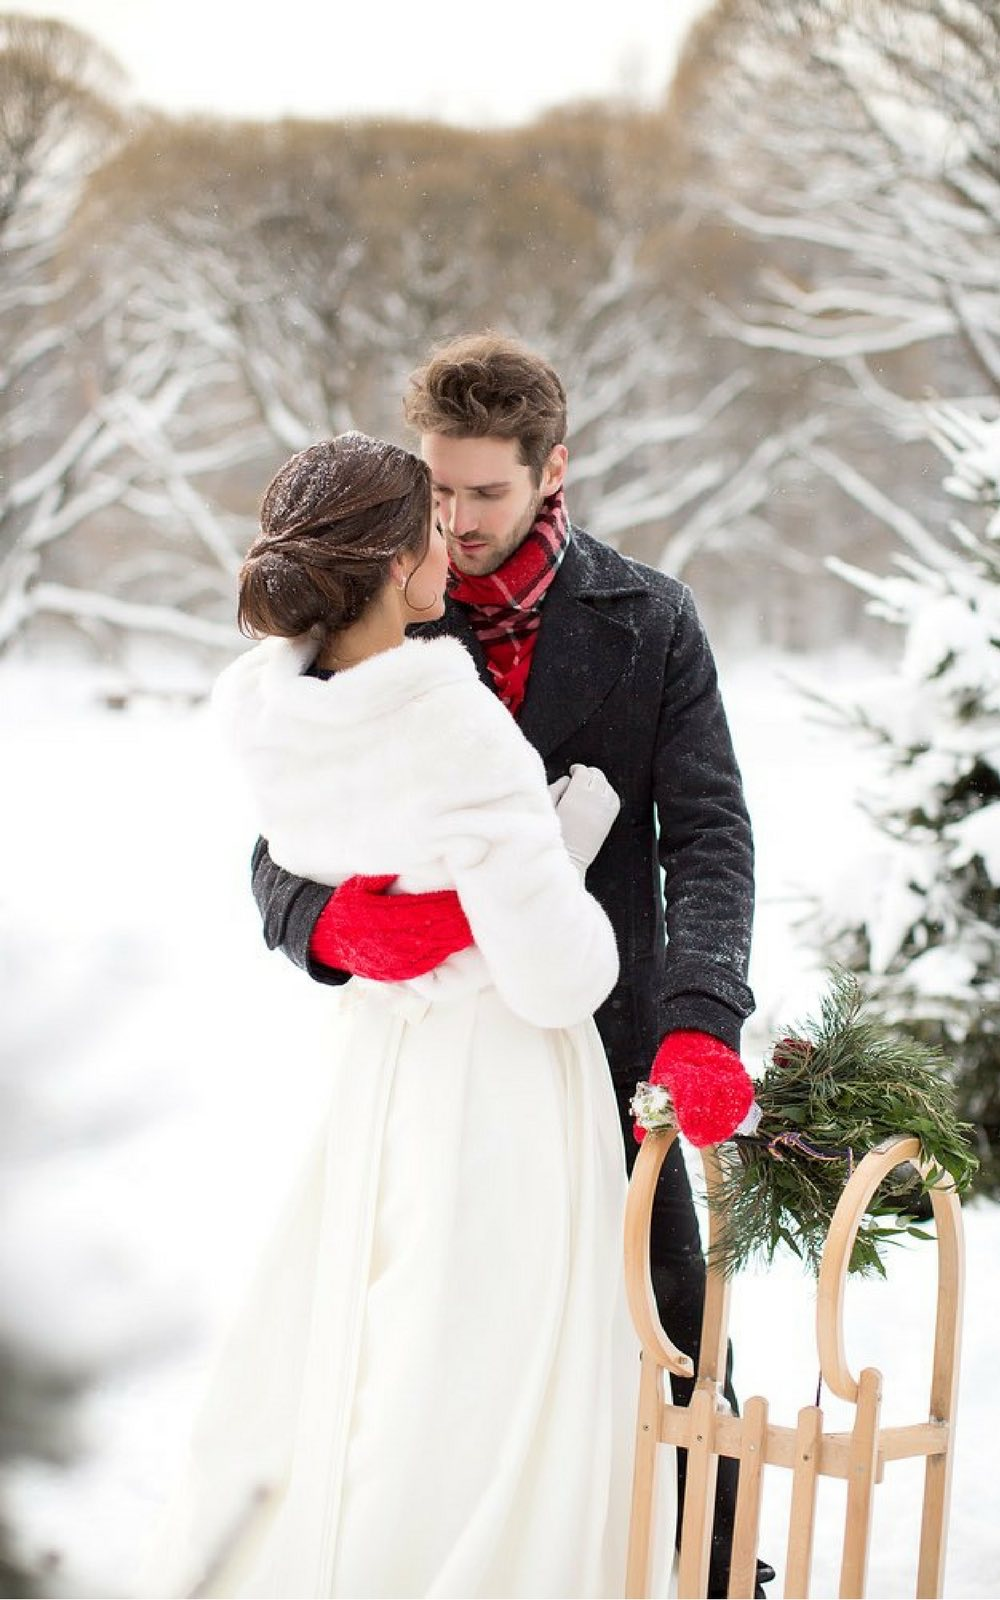 how to plan a winter wedding on a budget | winter destination wedding | how to plan a wedding in the off season to save money | save money wedding planning